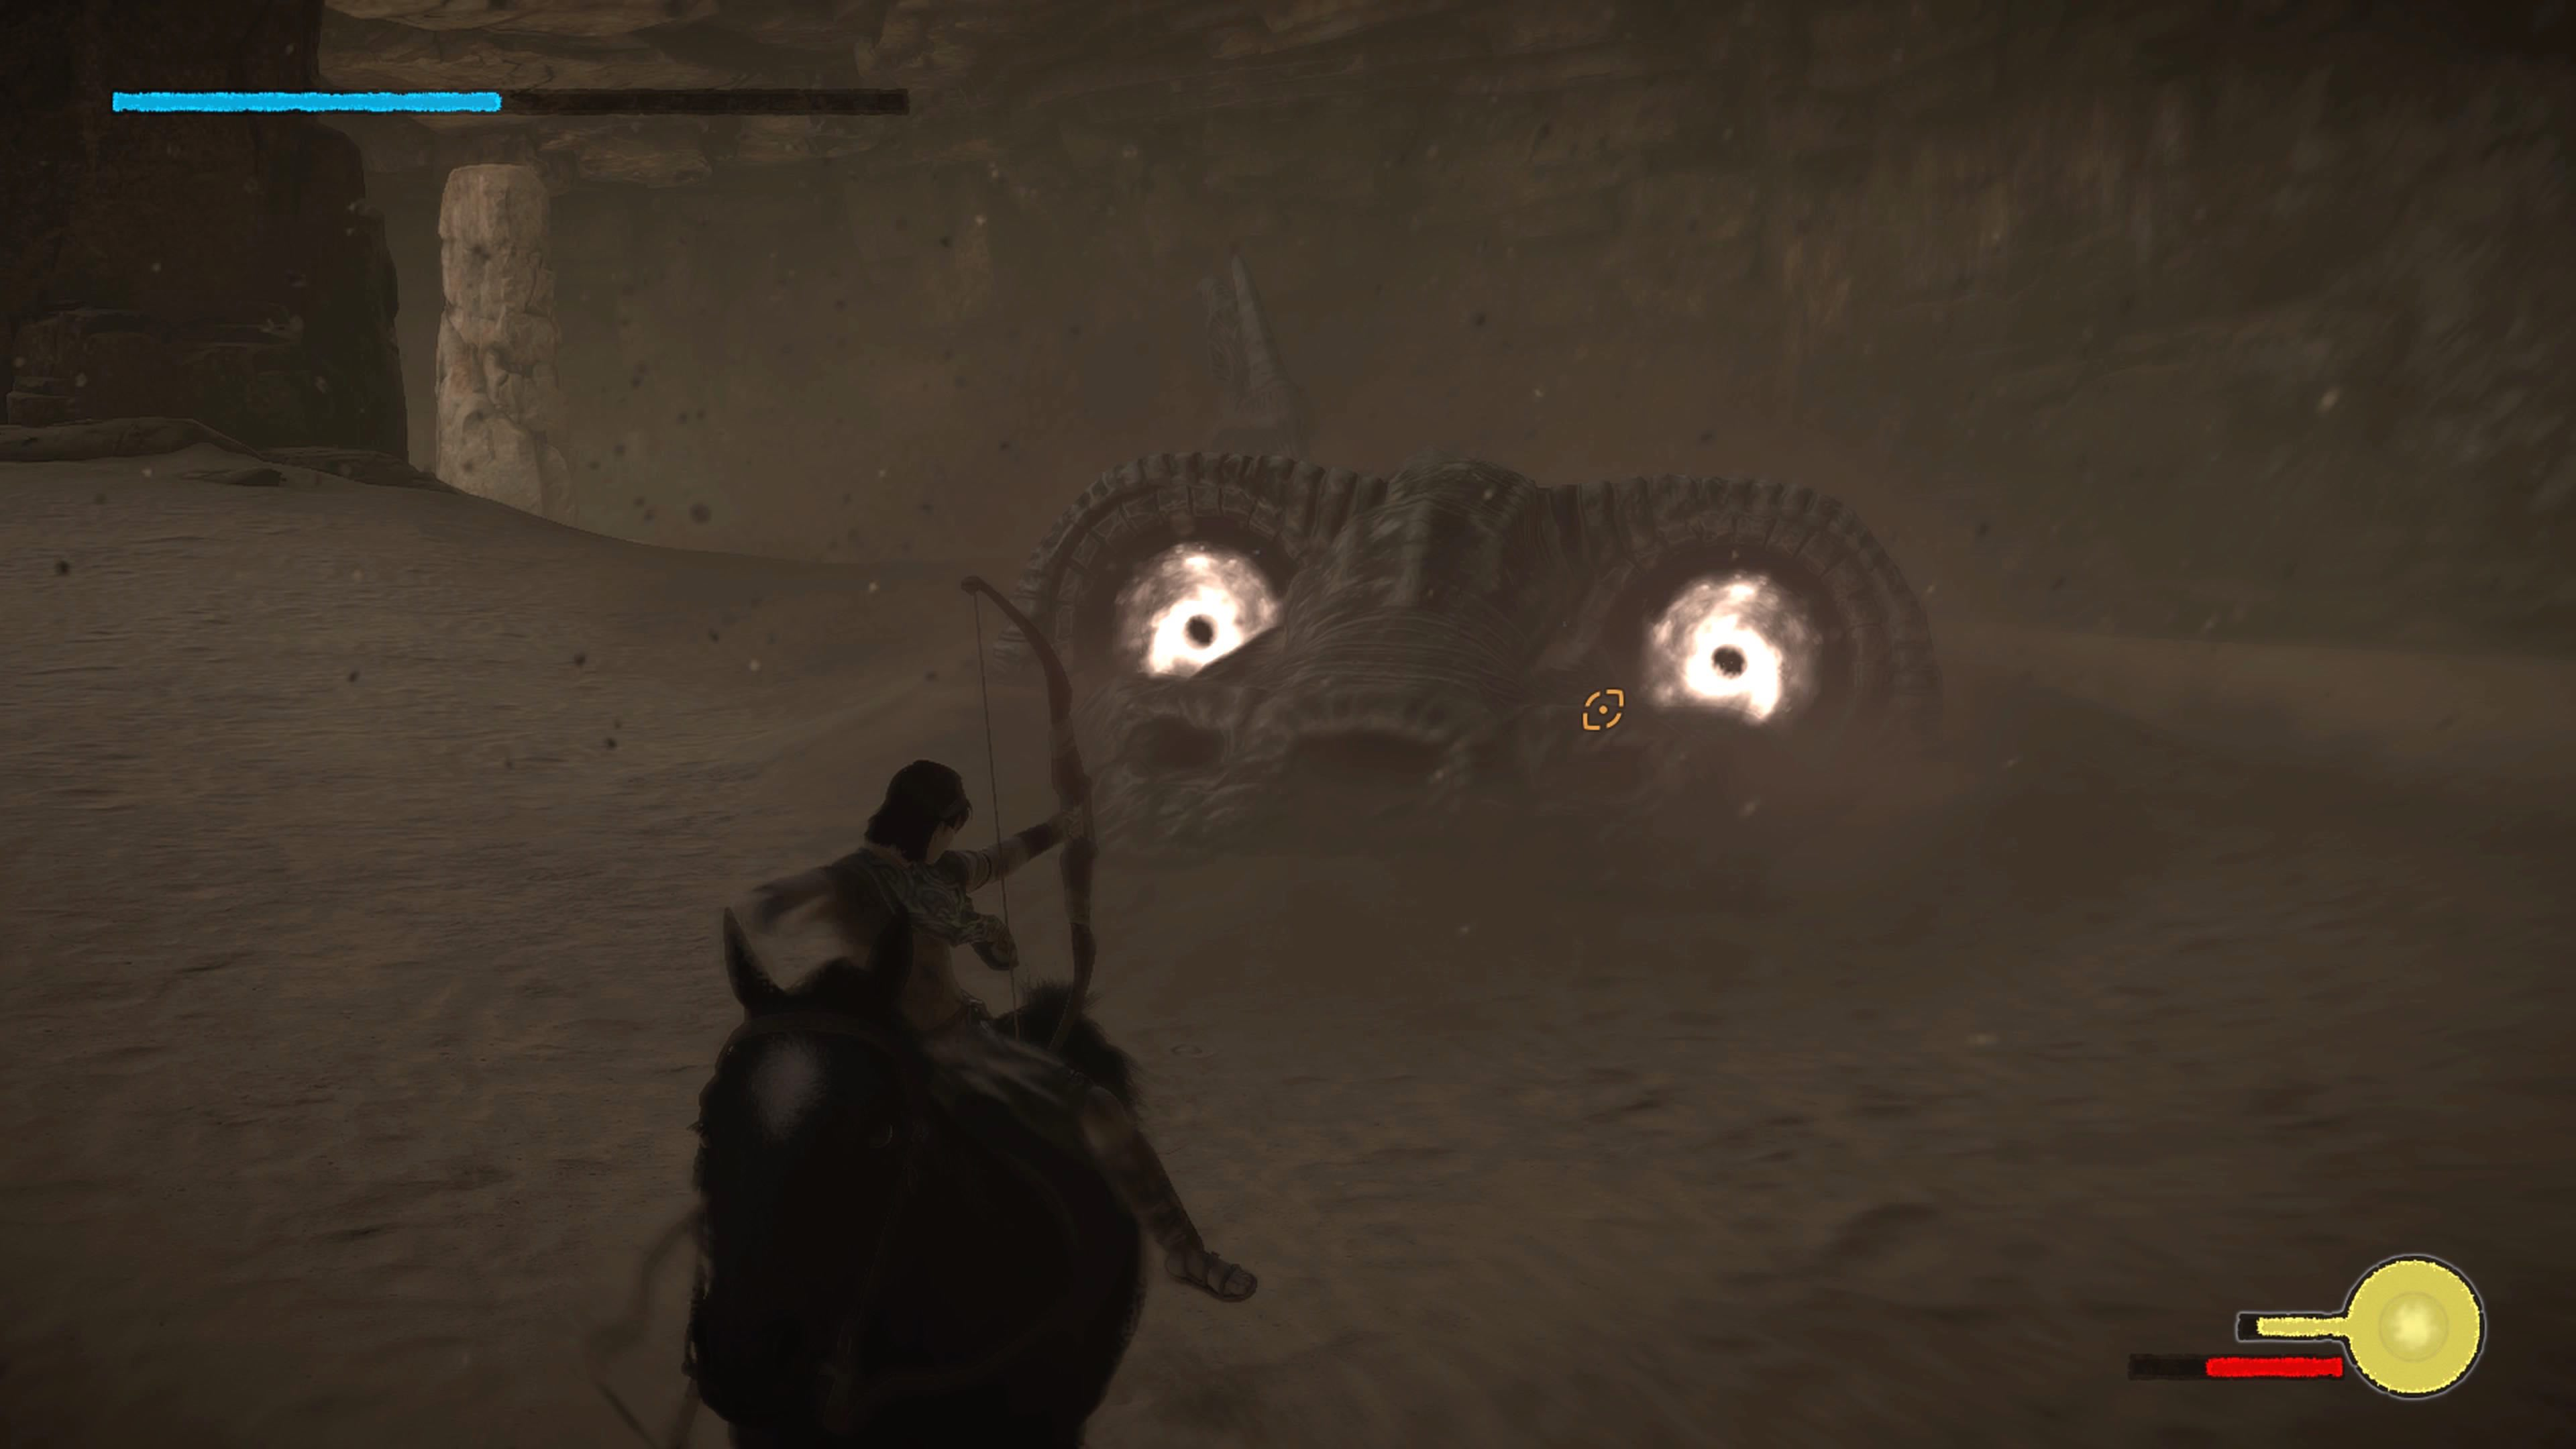 Shadow_of_the_Colossus_Coloso_10_2